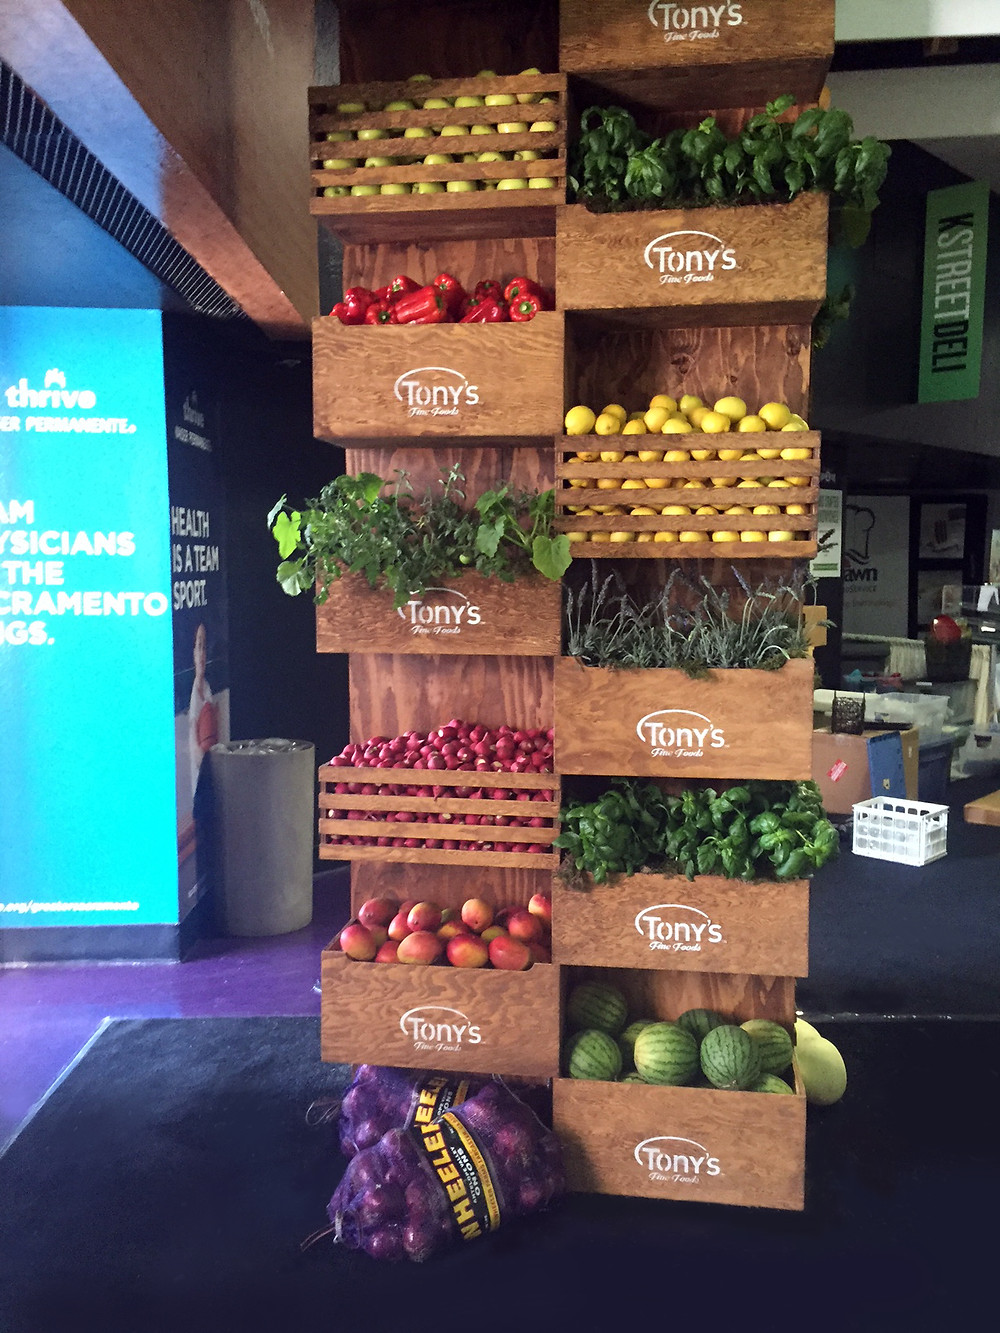 th!nk Fresh Food Show 2016 - column of crates with plants and produce